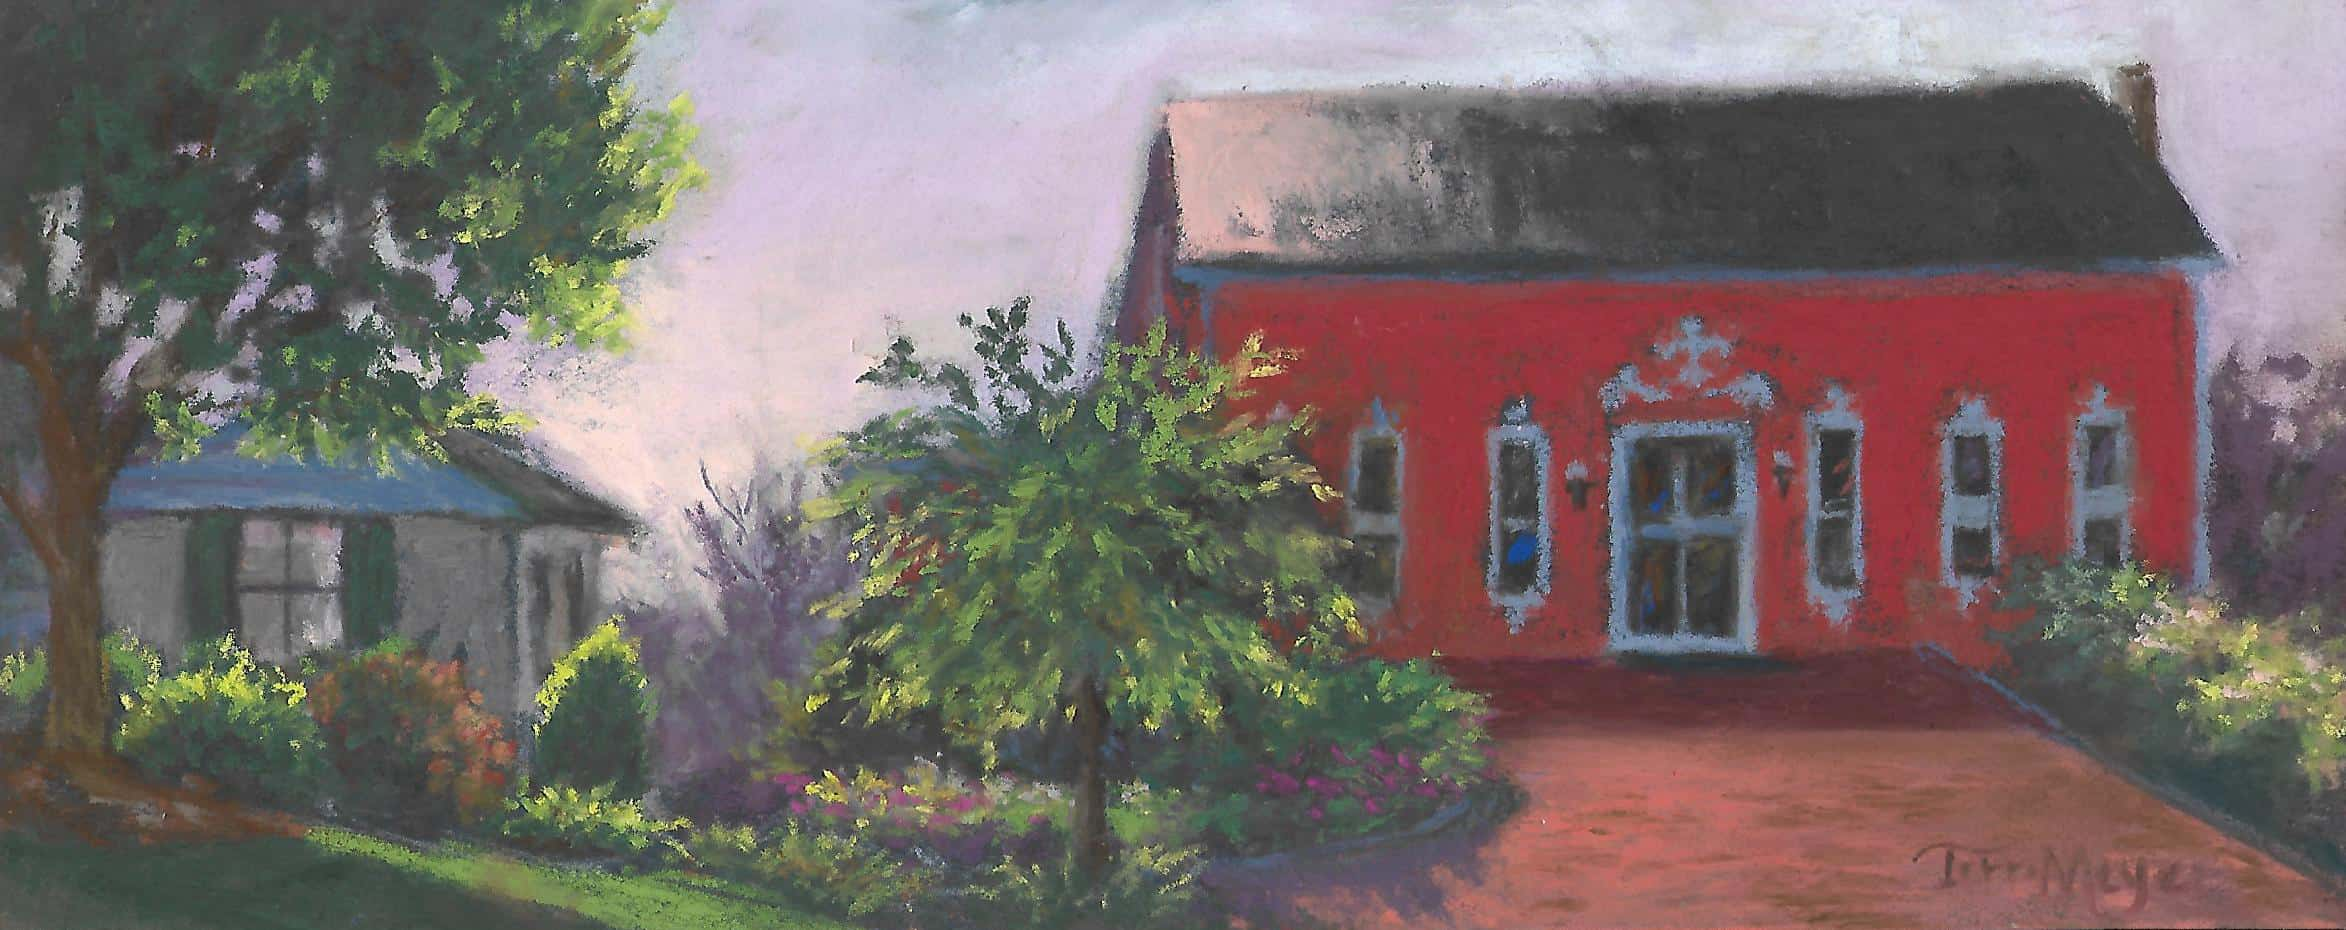 The Creative Chateau Barn - Plein Air Painting by Ohio Artist Terri Meyer